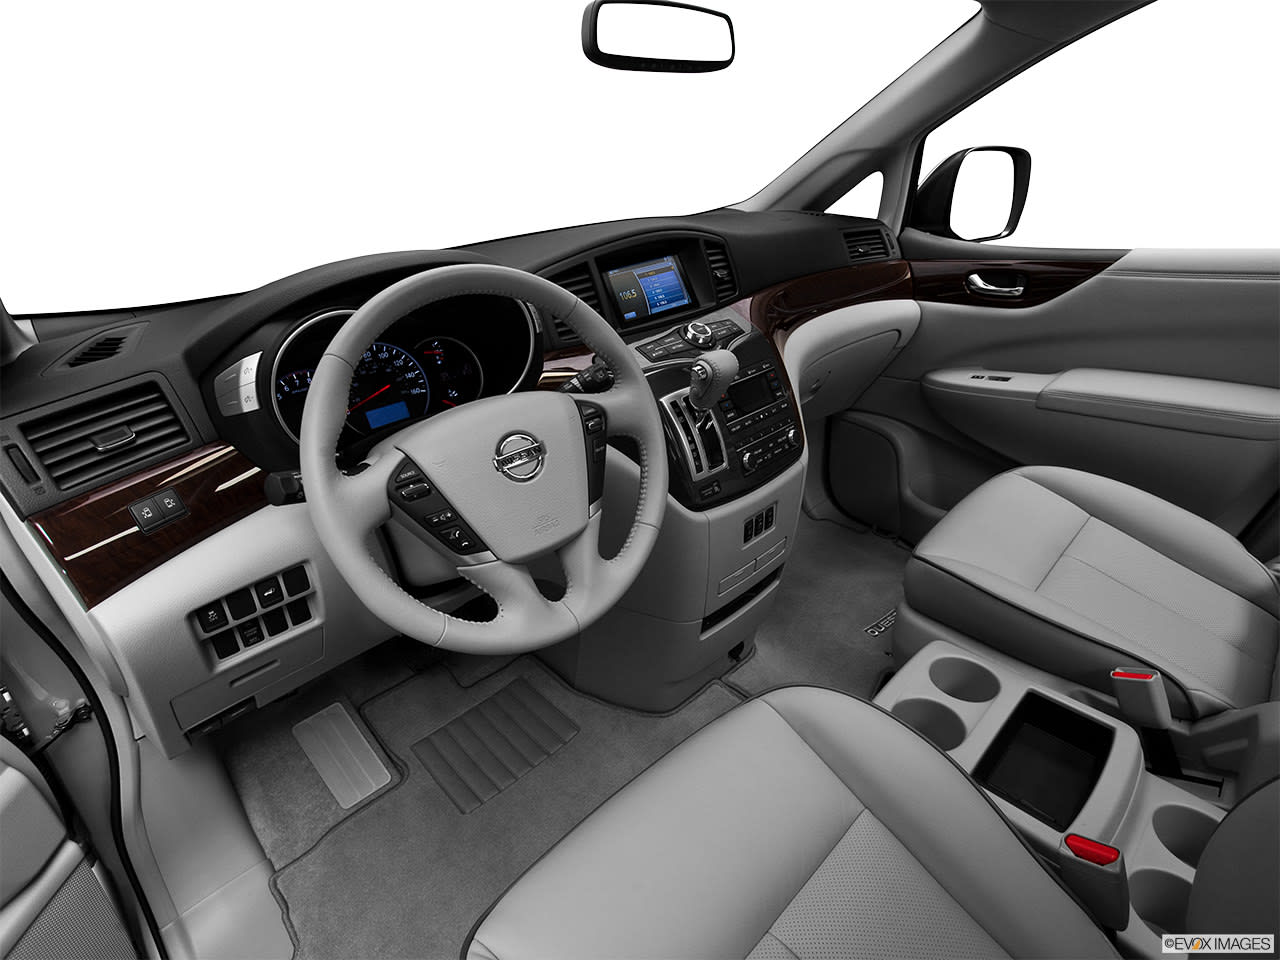 Nissan Quest 2012 Interior